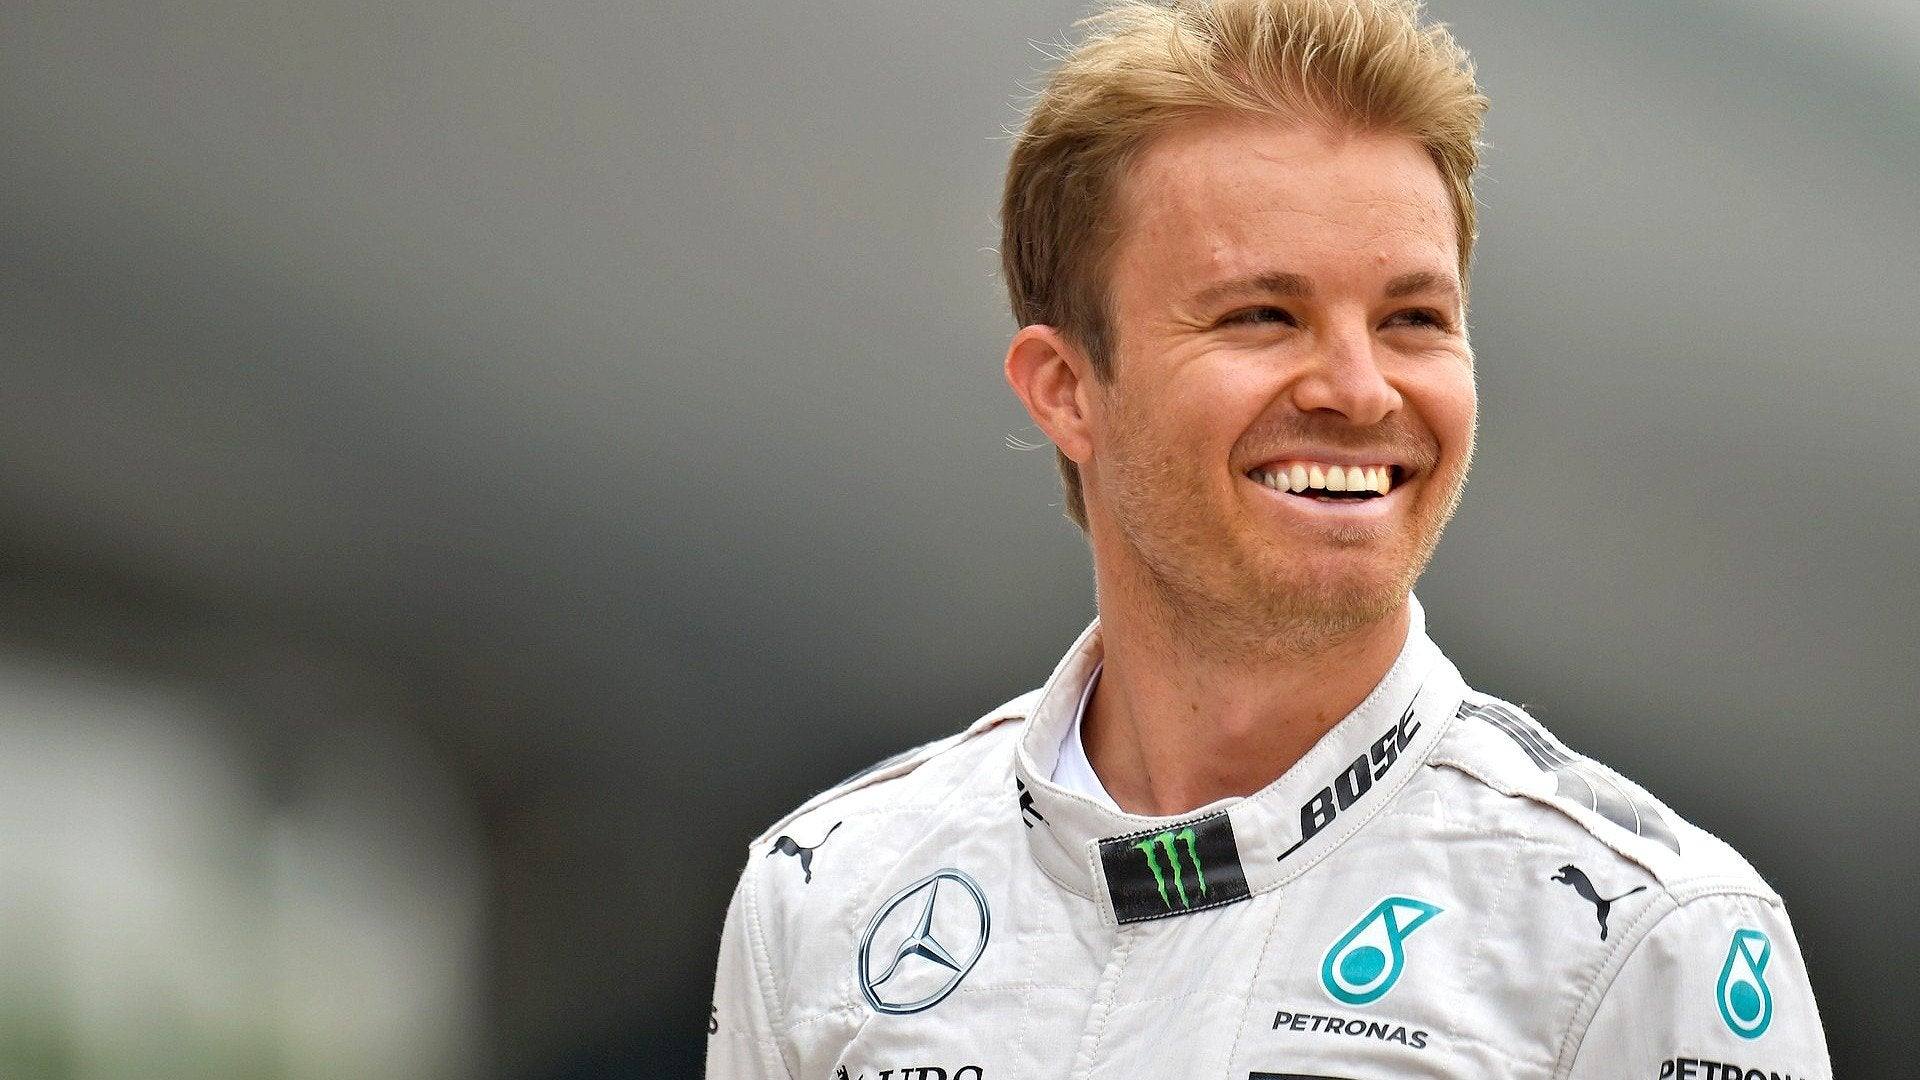 Nico Rosberg: My Life After F1